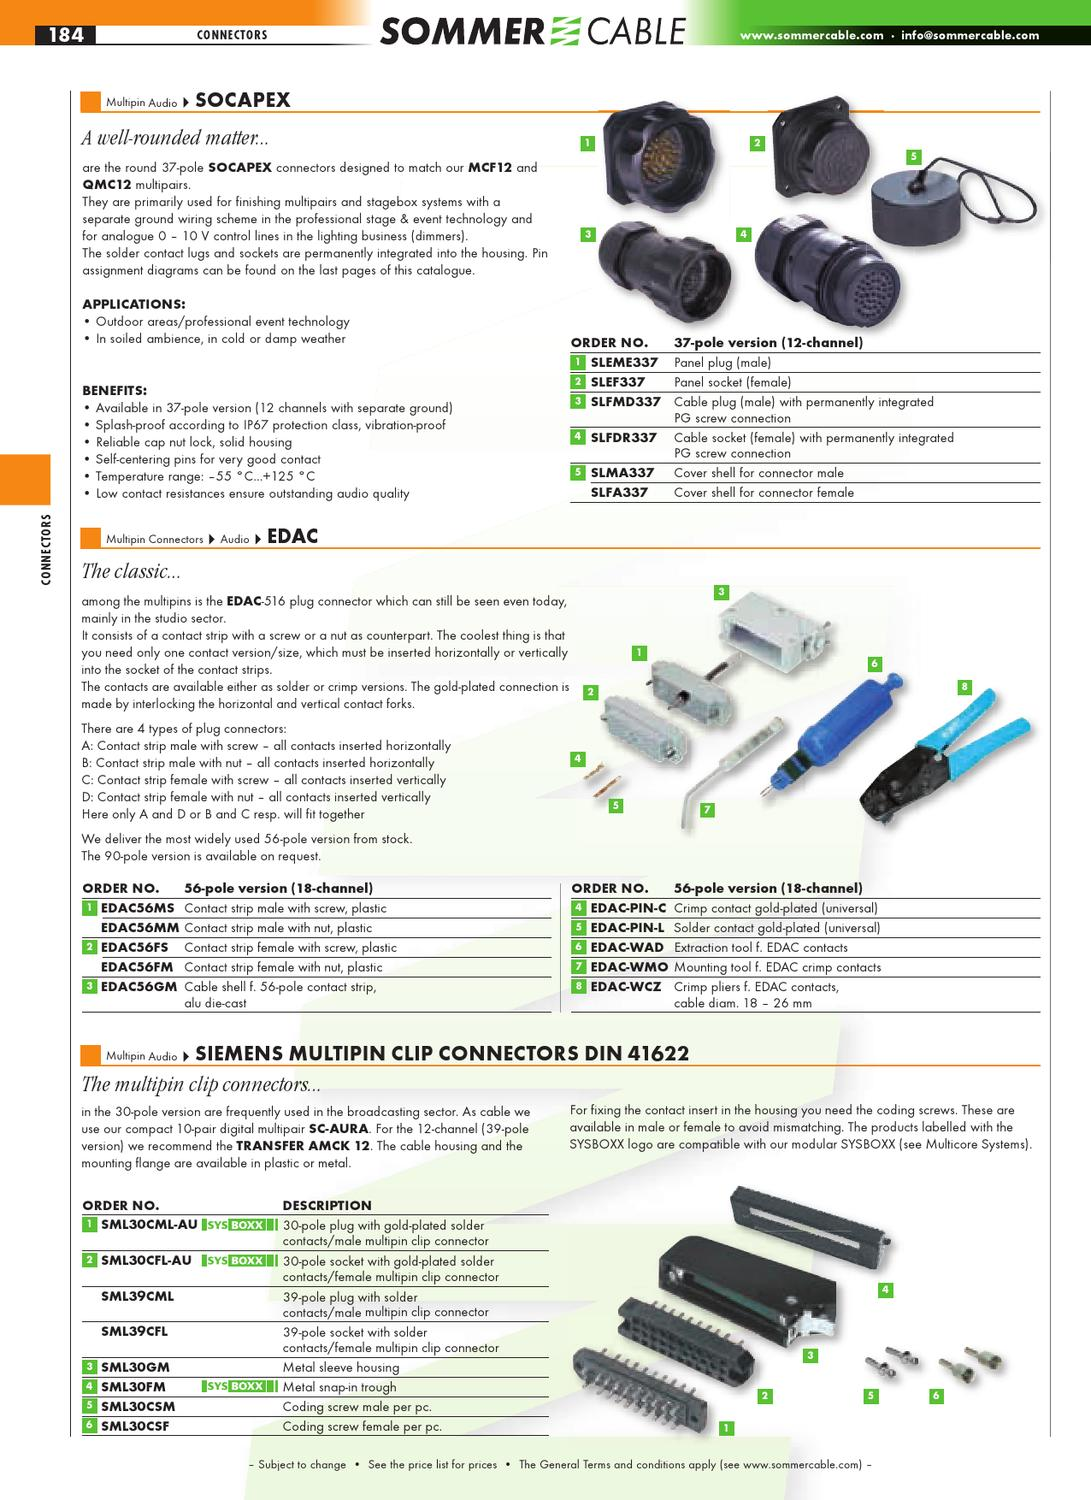 Sommer Cable Catalog Deel 2 - Plug Connectors + Premade